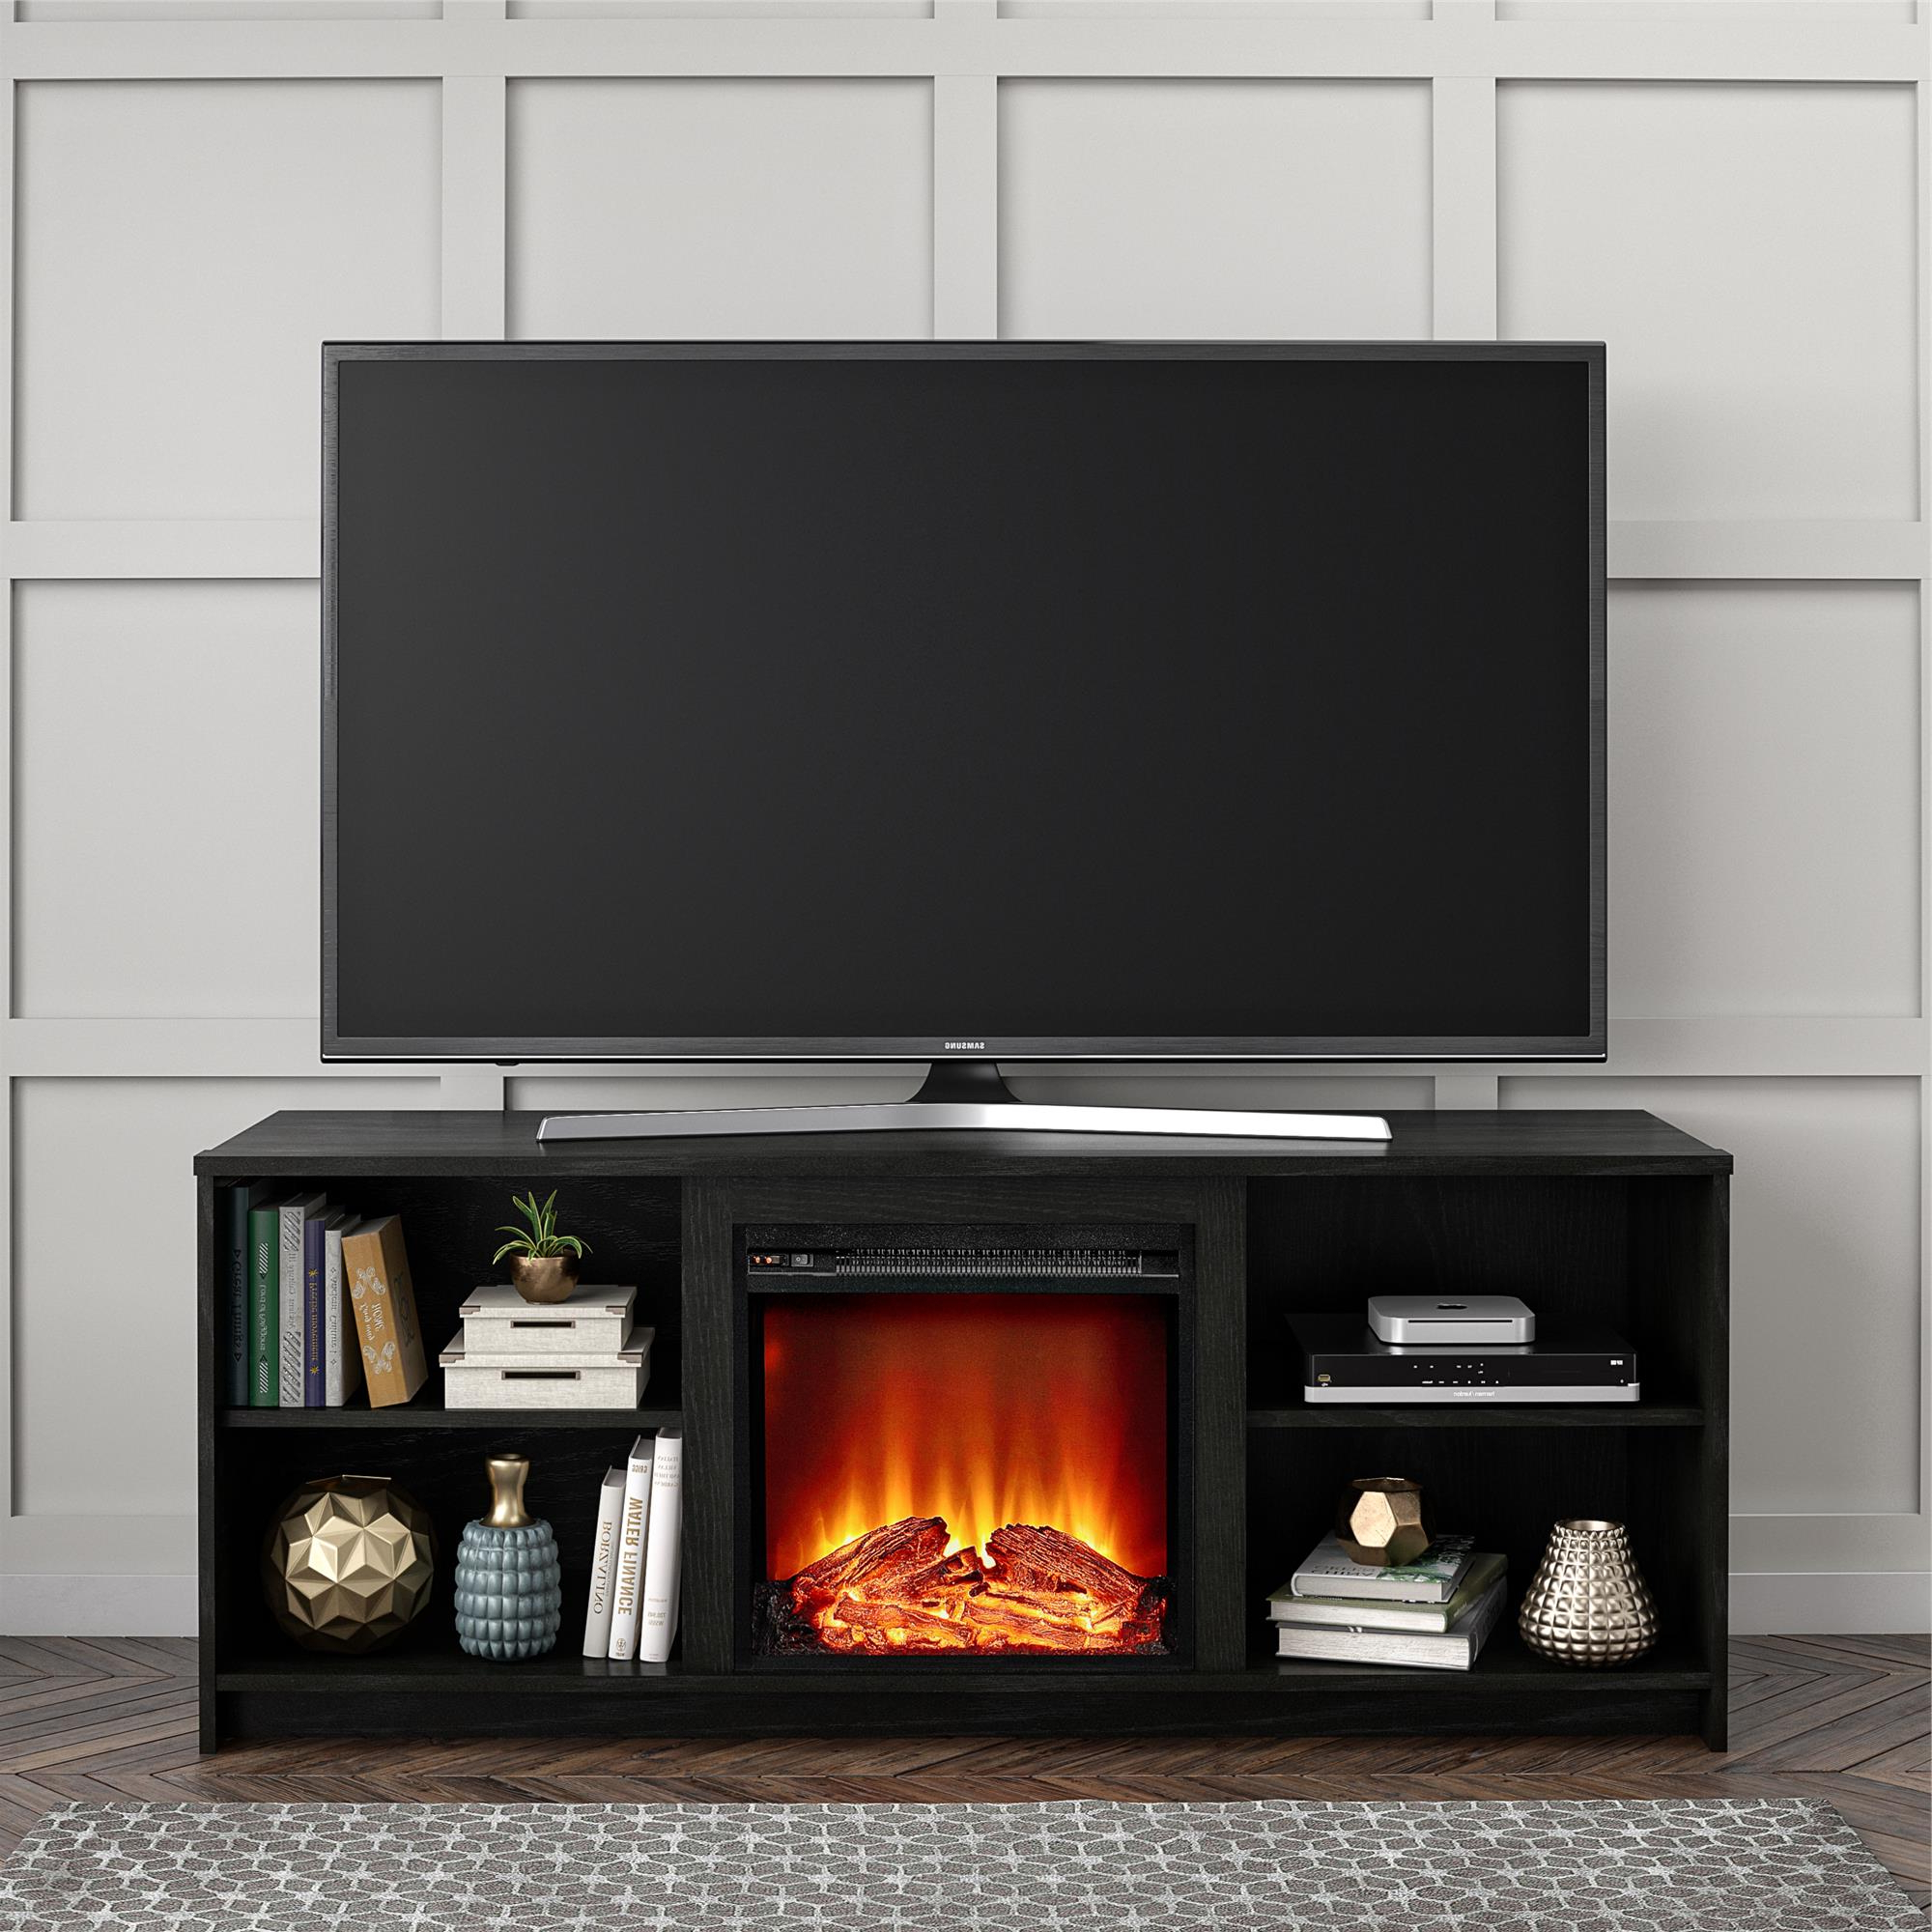 """Mainstays Fireplace Tv Stand For Tvs Up To 65"""", Black Oak In Current Binegar Tv Stands For Tvs Up To 65"""" (View 6 of 20)"""